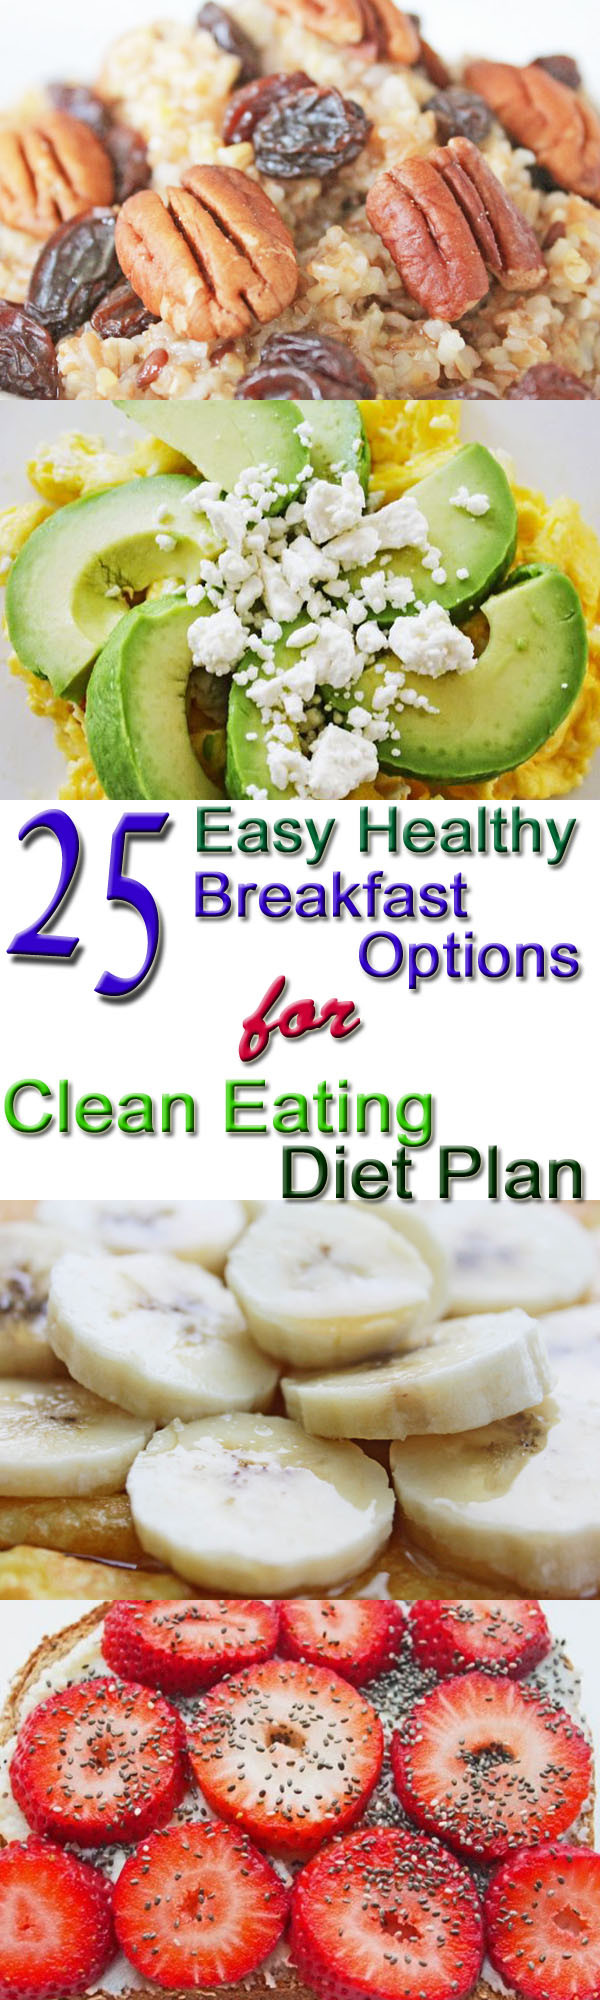 Clean Eating Breakfast Recipe  25 Healthy Breakfast Options